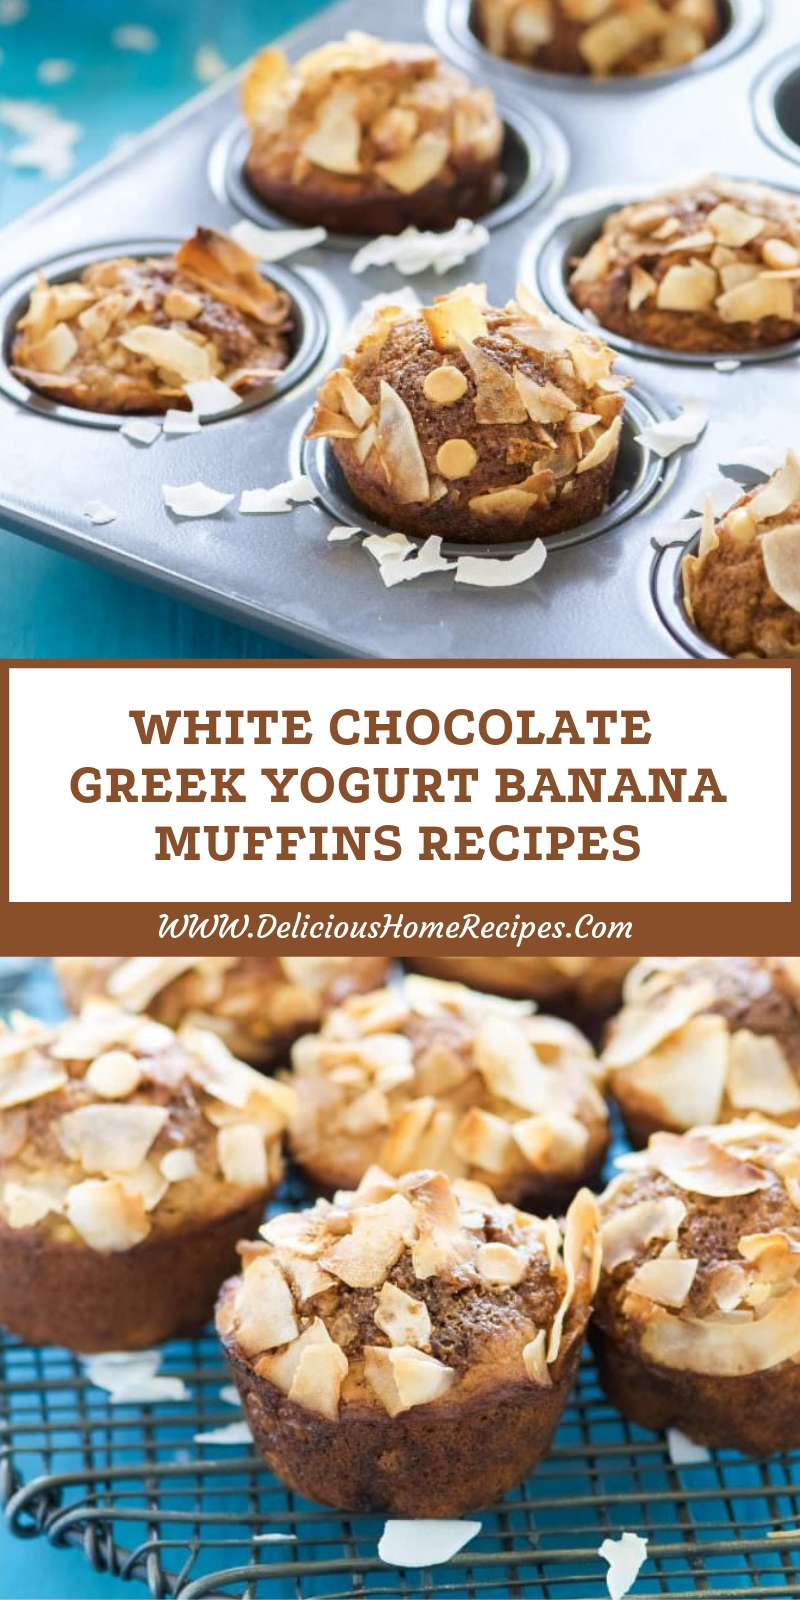 White Chocolate Greek Yogurt Banana Muffins Recipes